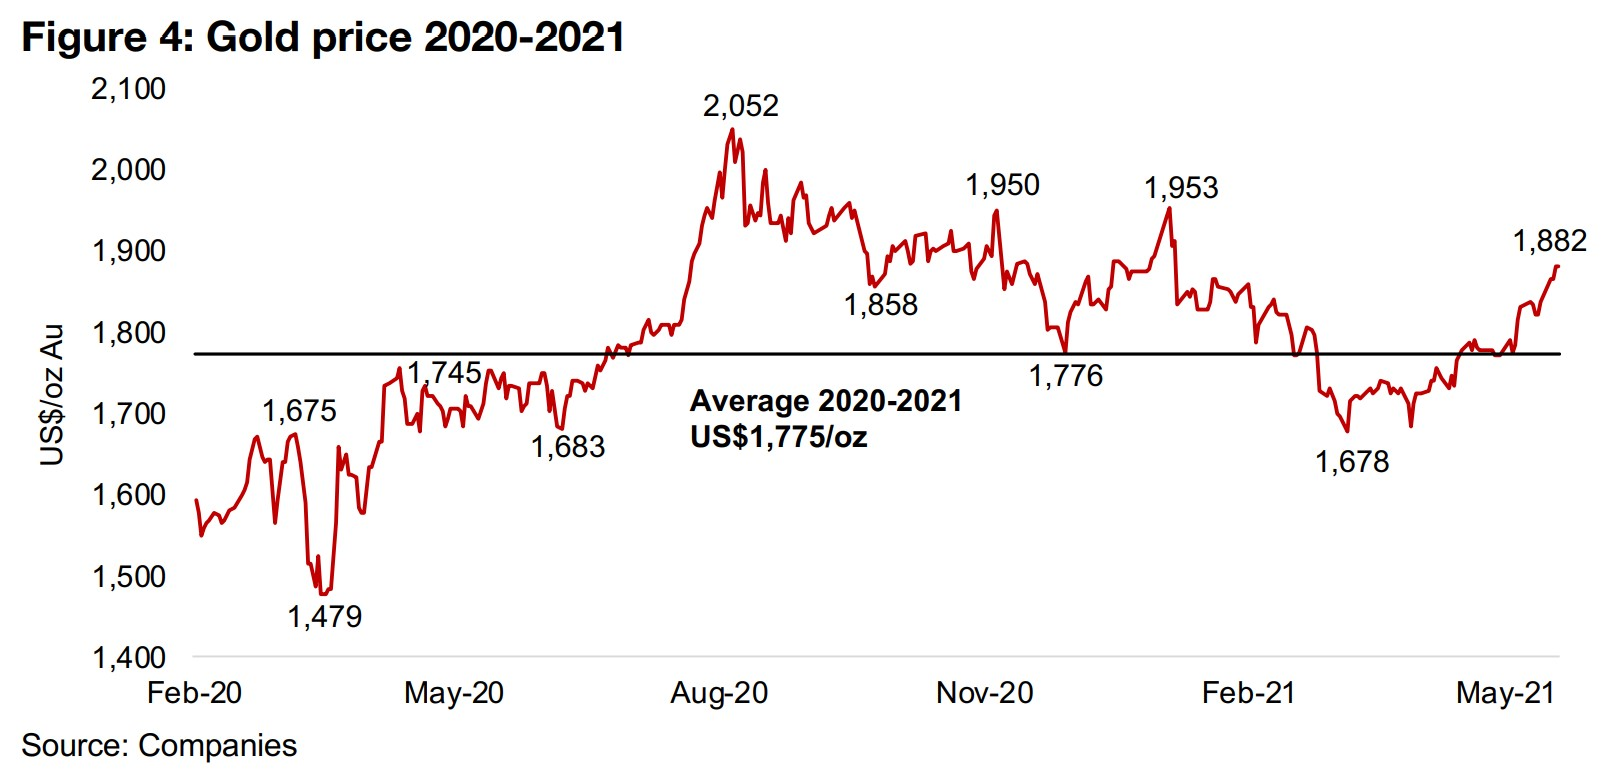 1) Gold back above the 2020-2021 average